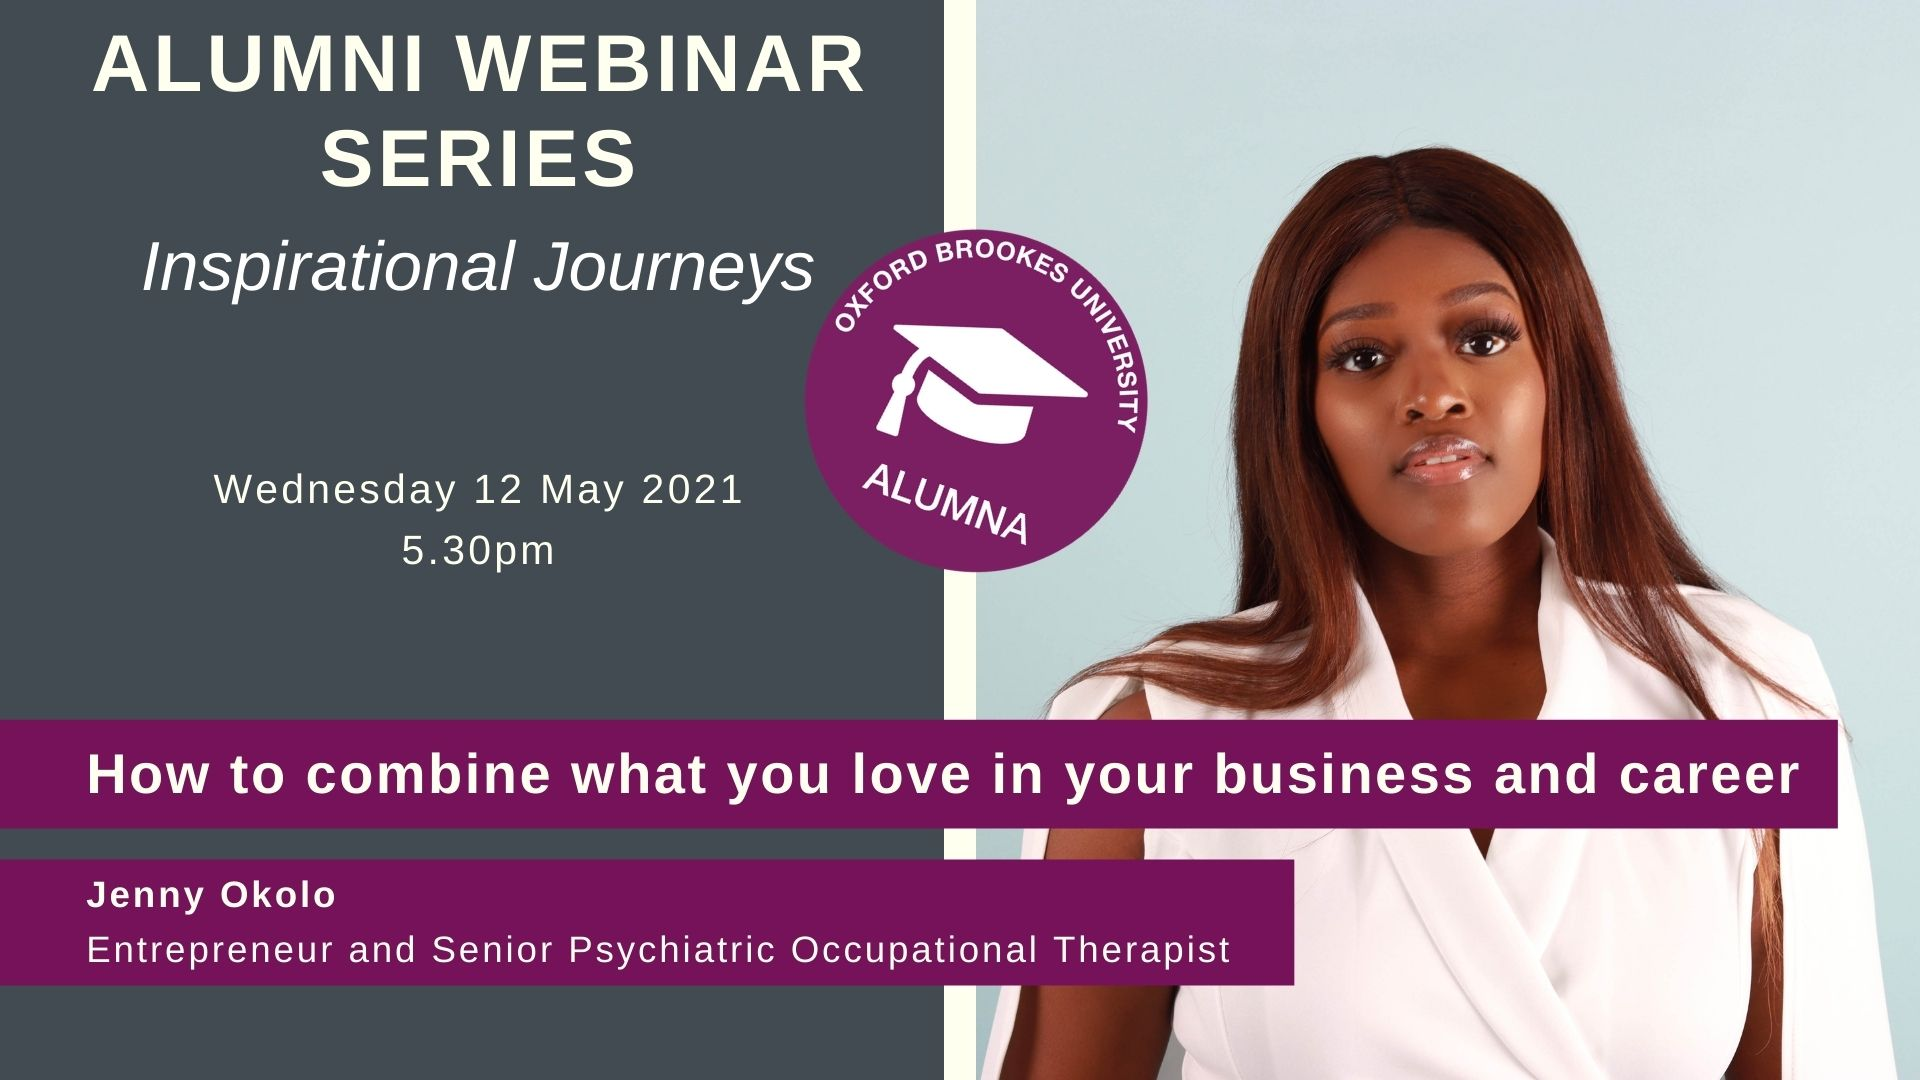 Jenny Okolo - How to combine what you love in your business and career